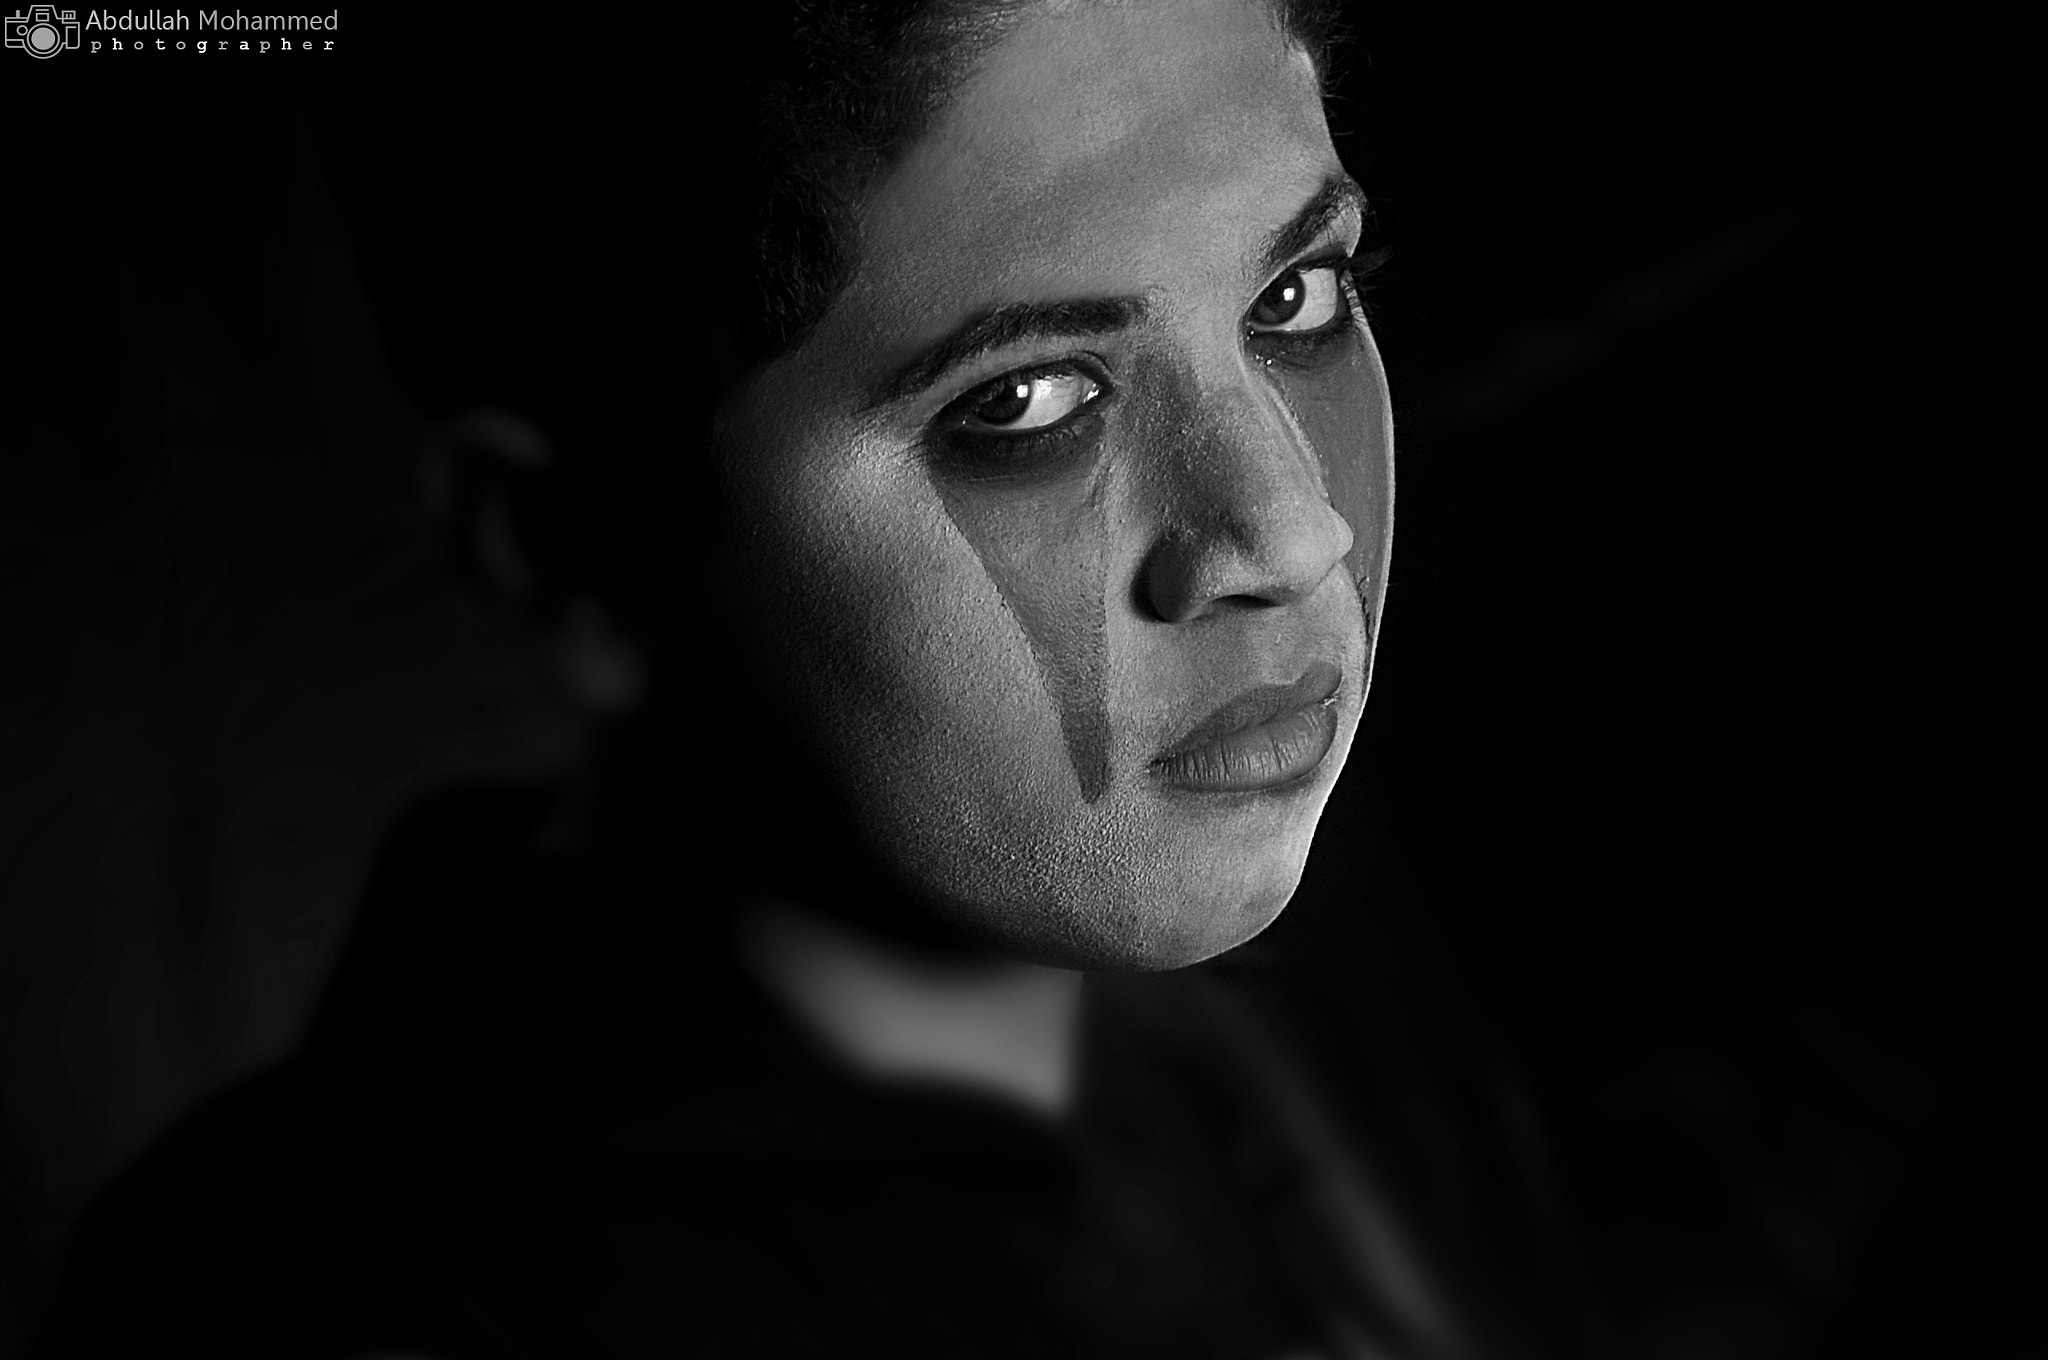 Photograph B&W Angry glances by abdullah mohammed on 500px